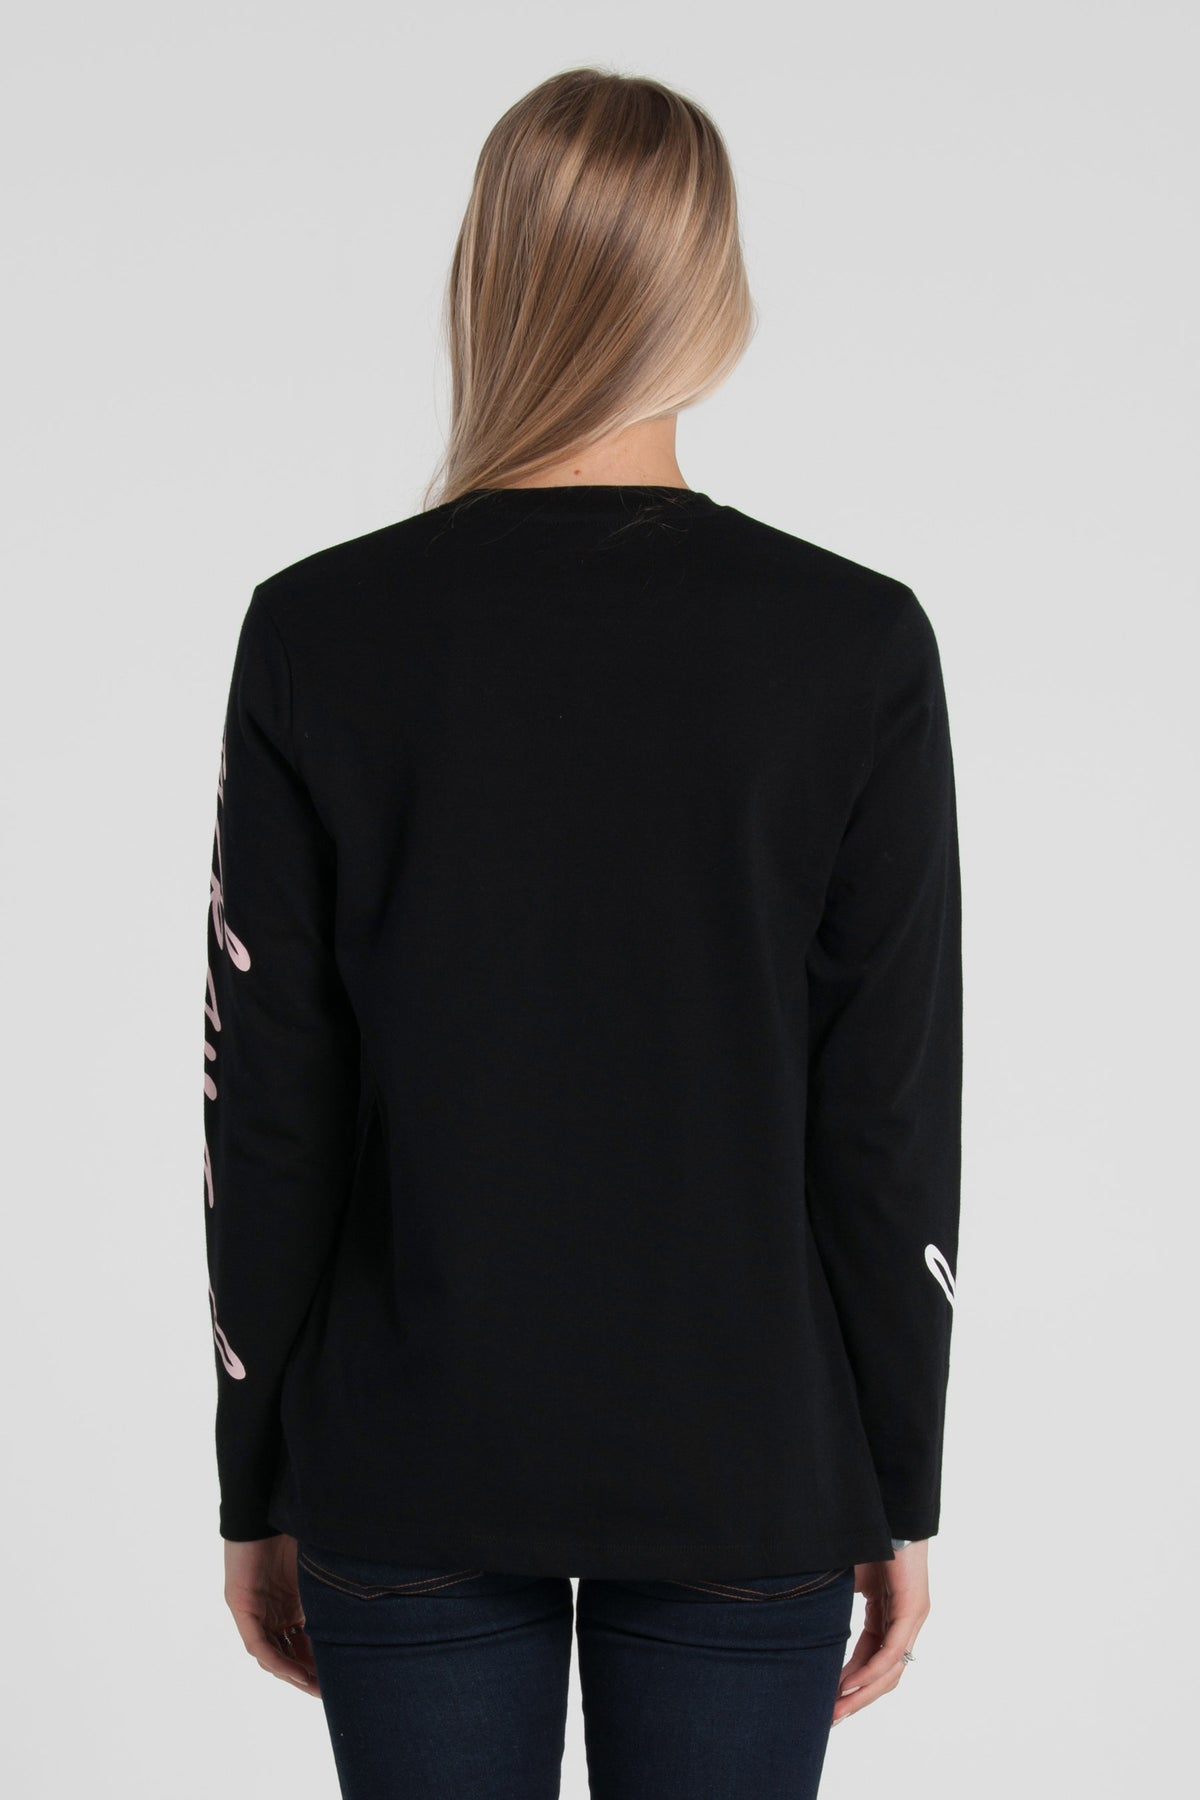 Scribble Relax Long Sleeve - Black